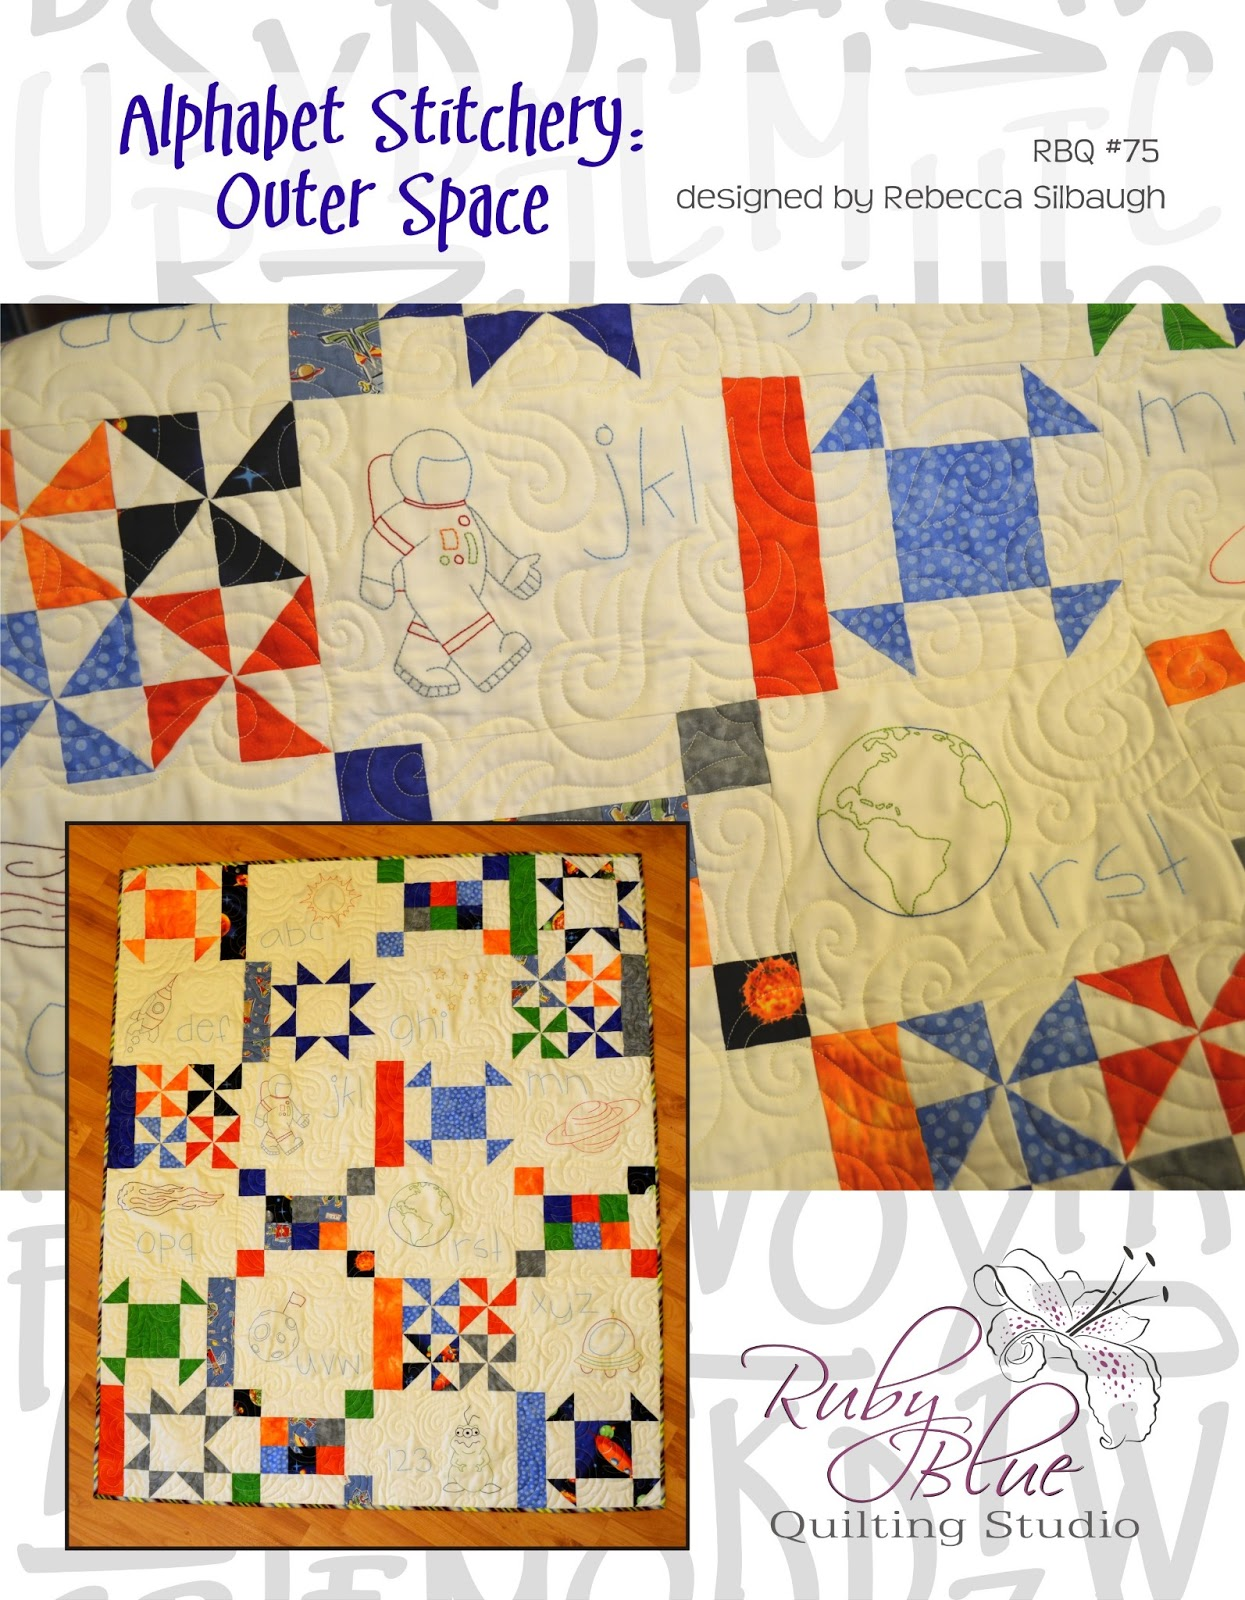 Ruby Blue Quilting Studio Patterns